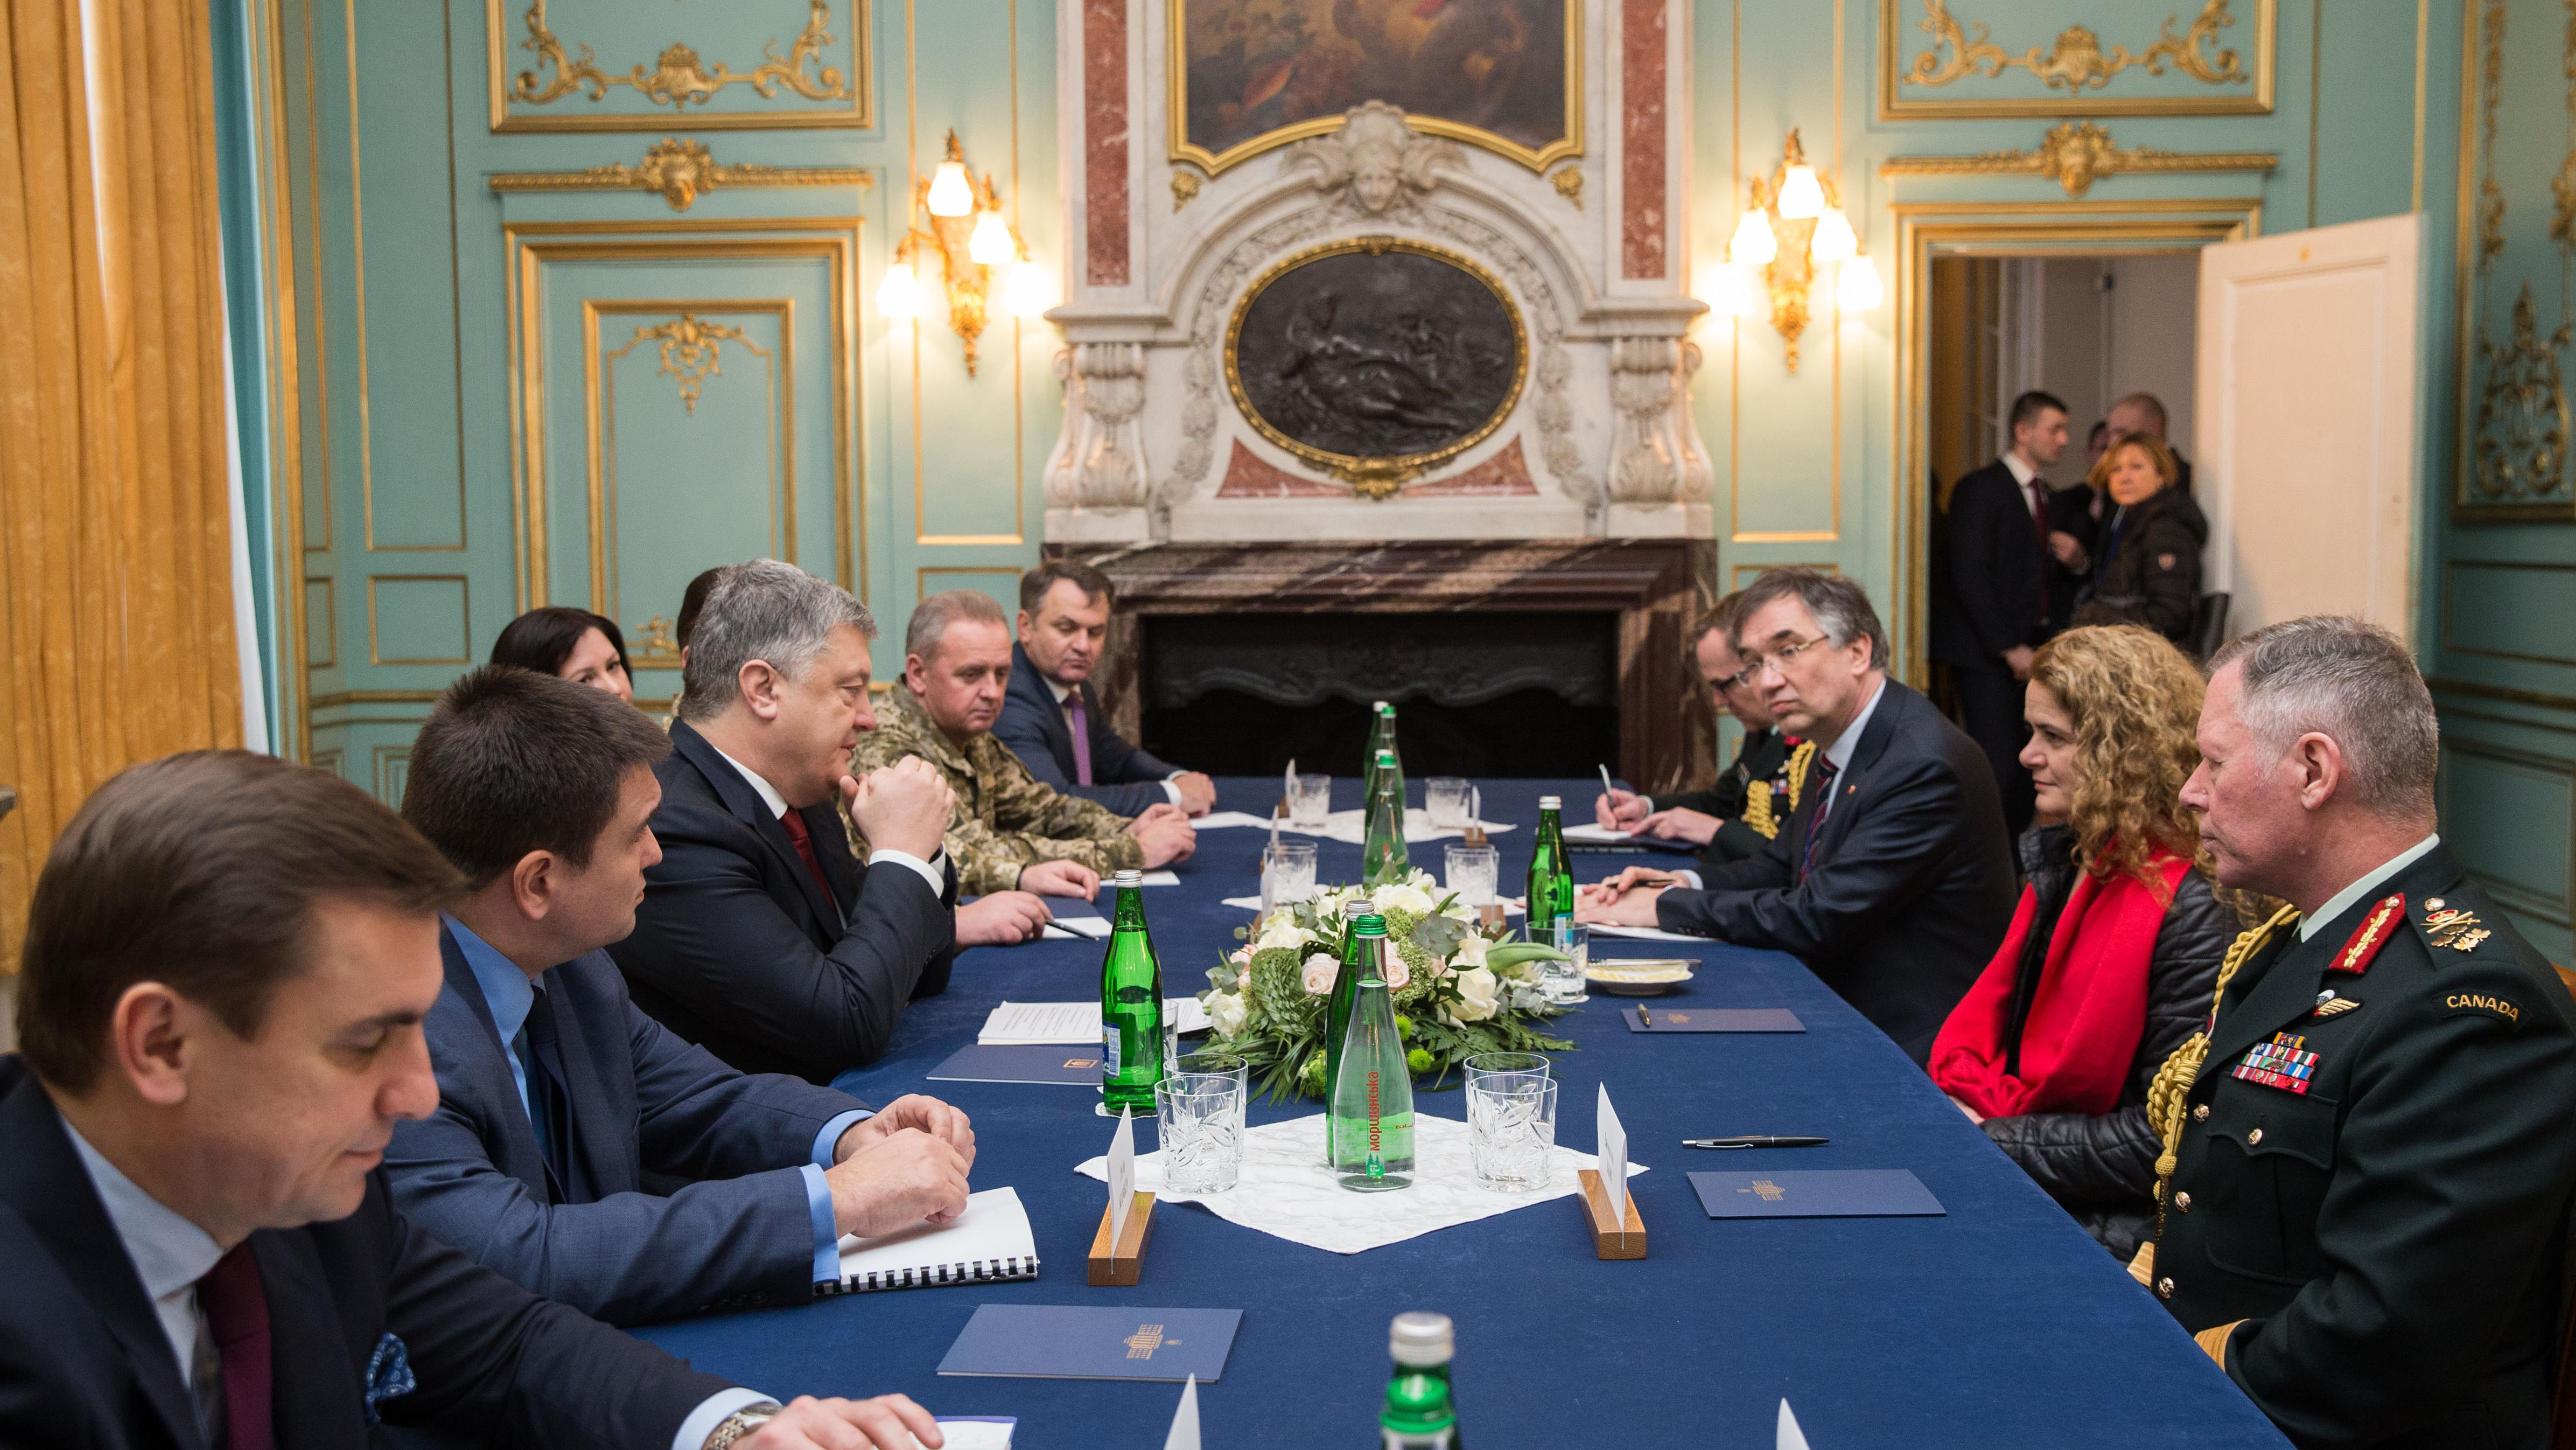 Canadian Gov. Gen. Julie Payette (second right) and Chief of Defence Staff Gen. Jonathan Vance attend a meeting with Ukrainian President Petro Poroshenko (third left) at the Potocki Palace in the western Ukrainian city of Lviv, on Thursday, Jan. 18, 2018.